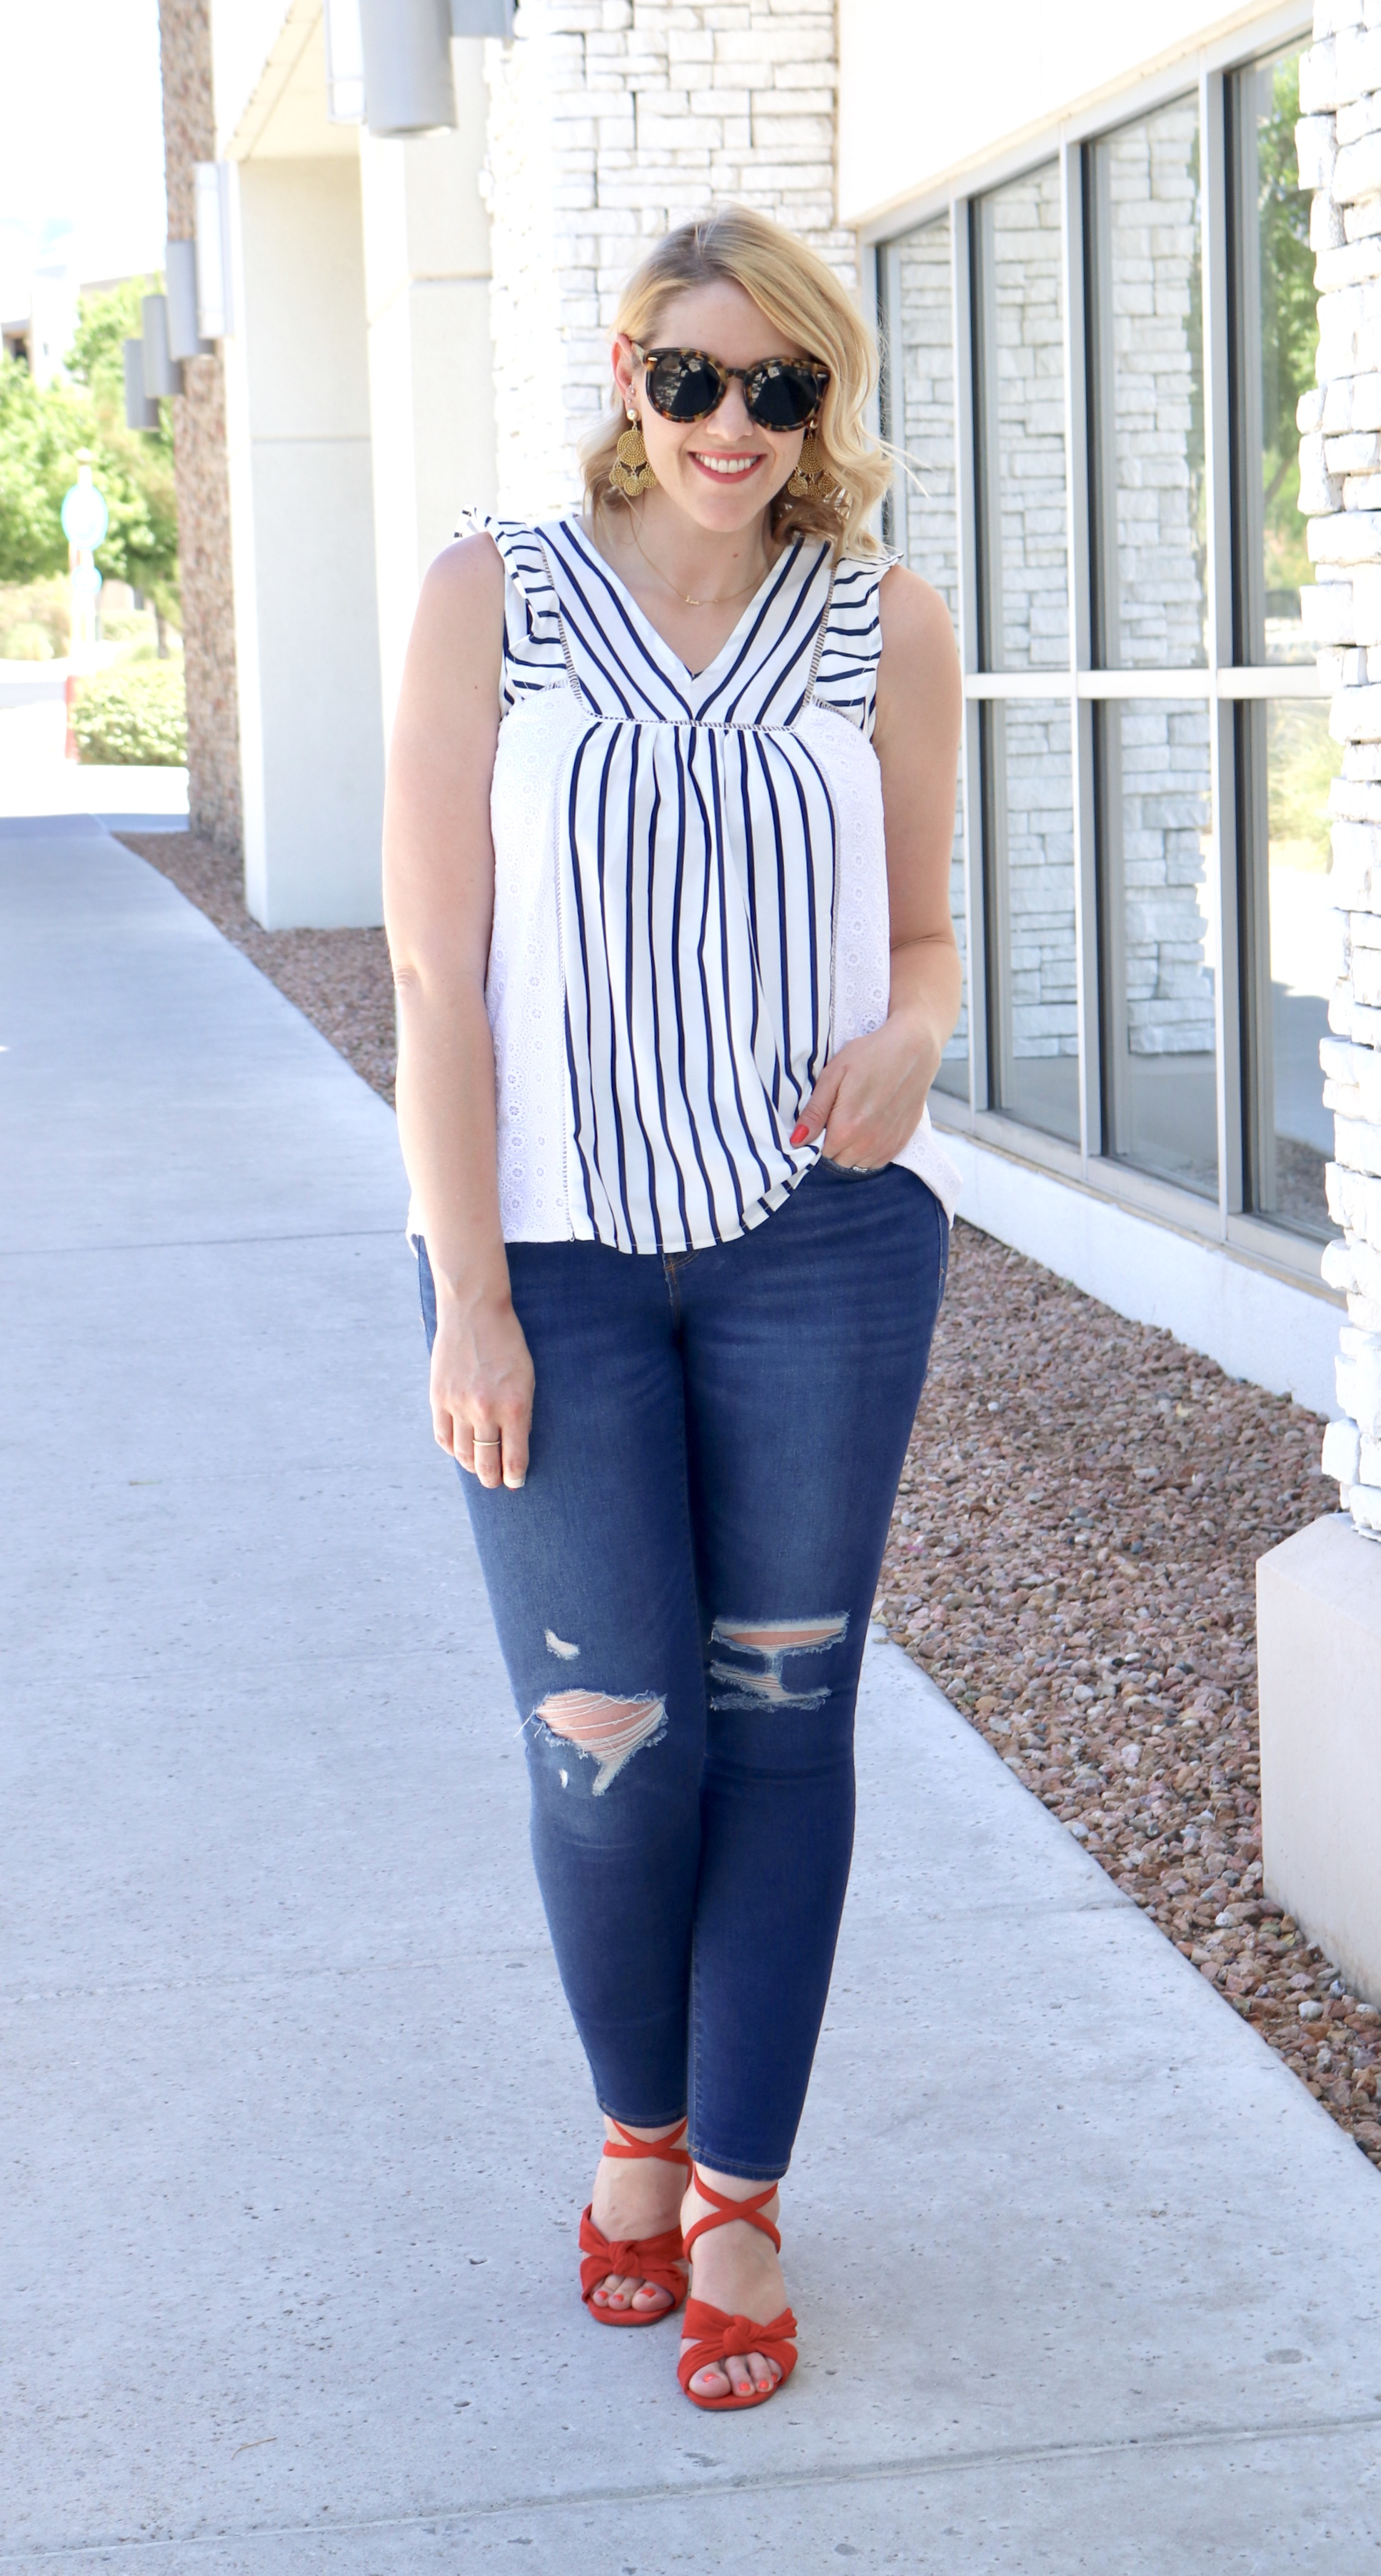 eyelet blouse for 4th of july #holidaystyle #4thofjuly #summerstyle